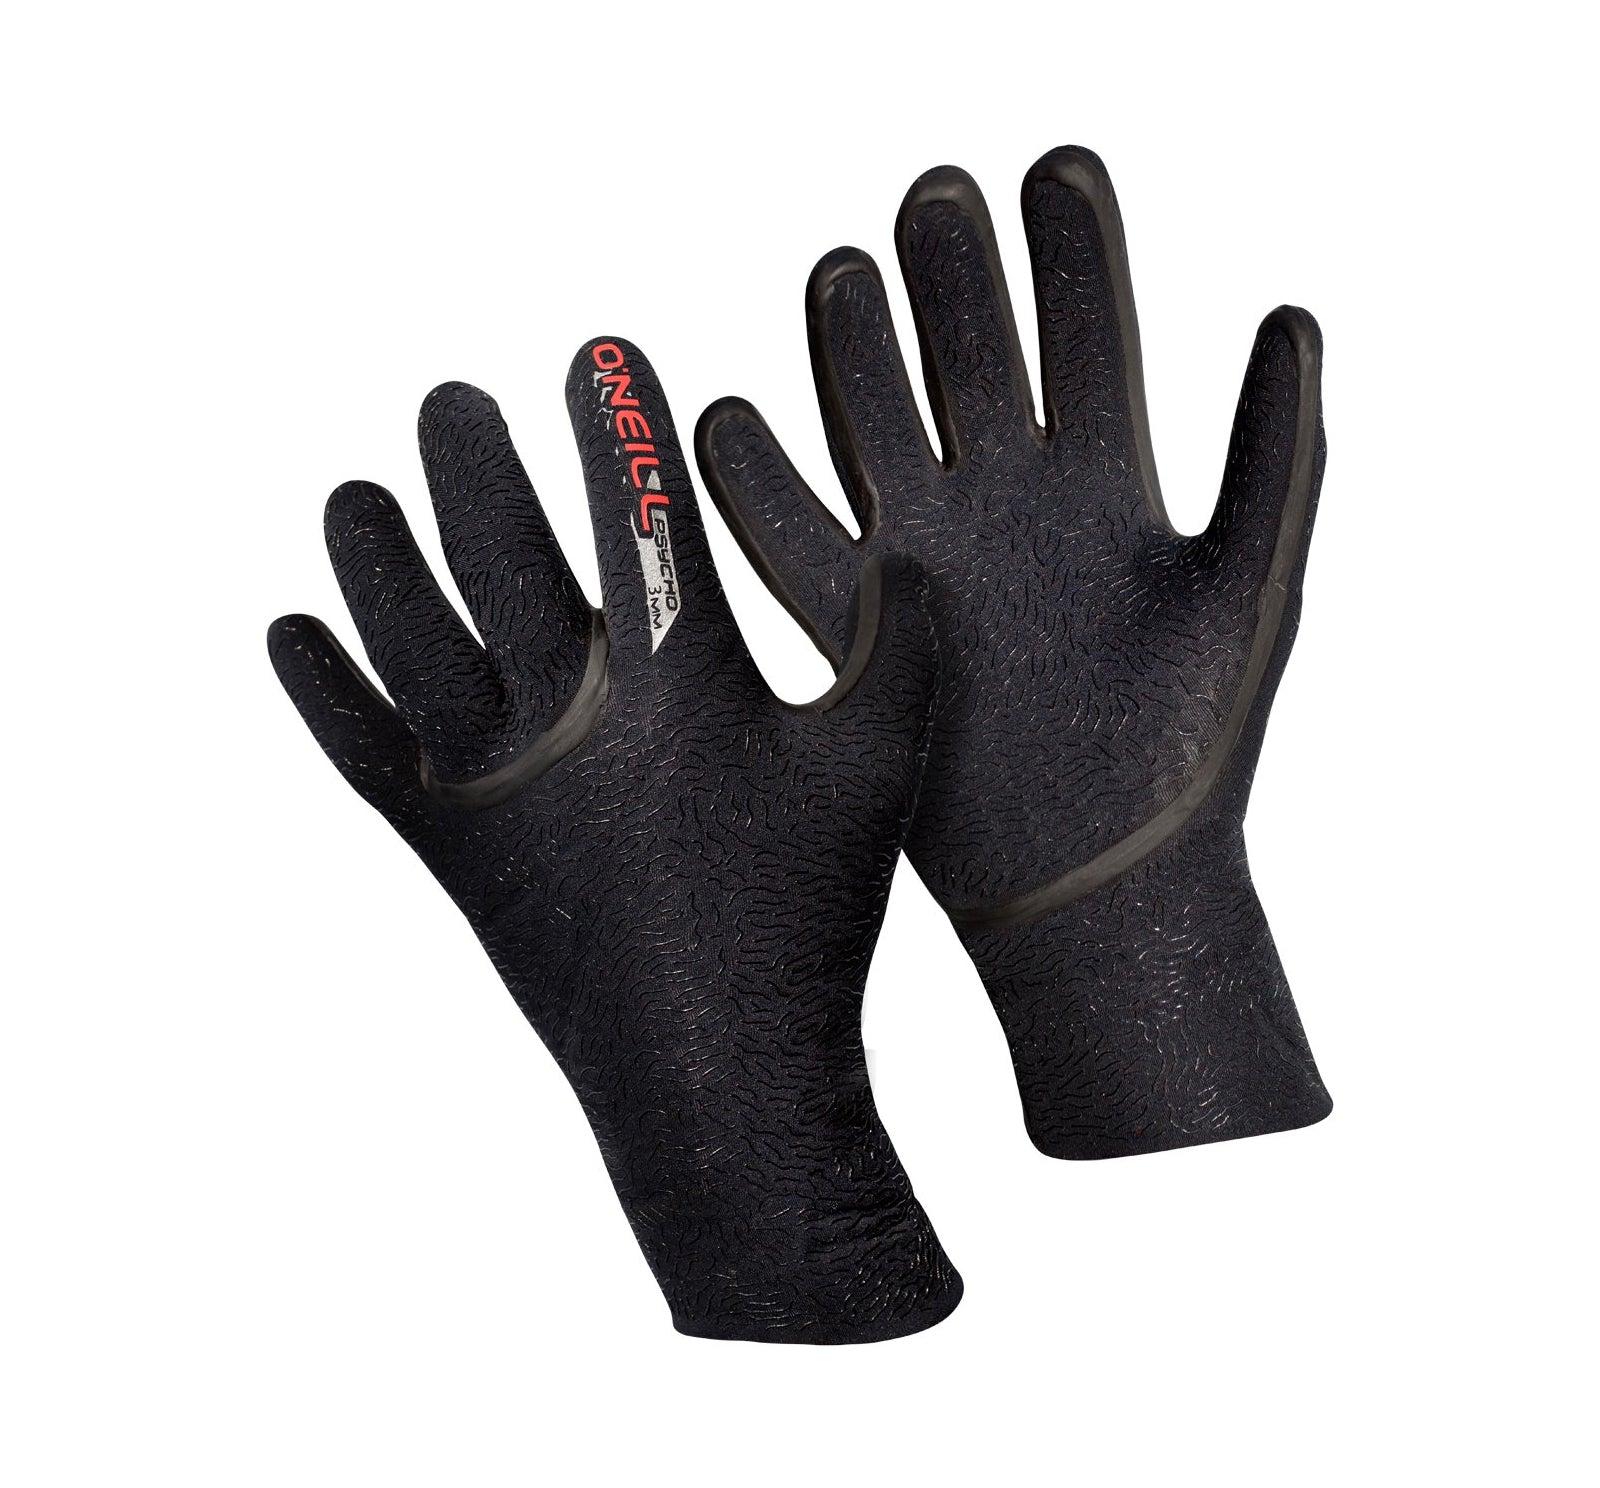 O'Neill Psycho DL 3mm Men's Wetsuit Gloves